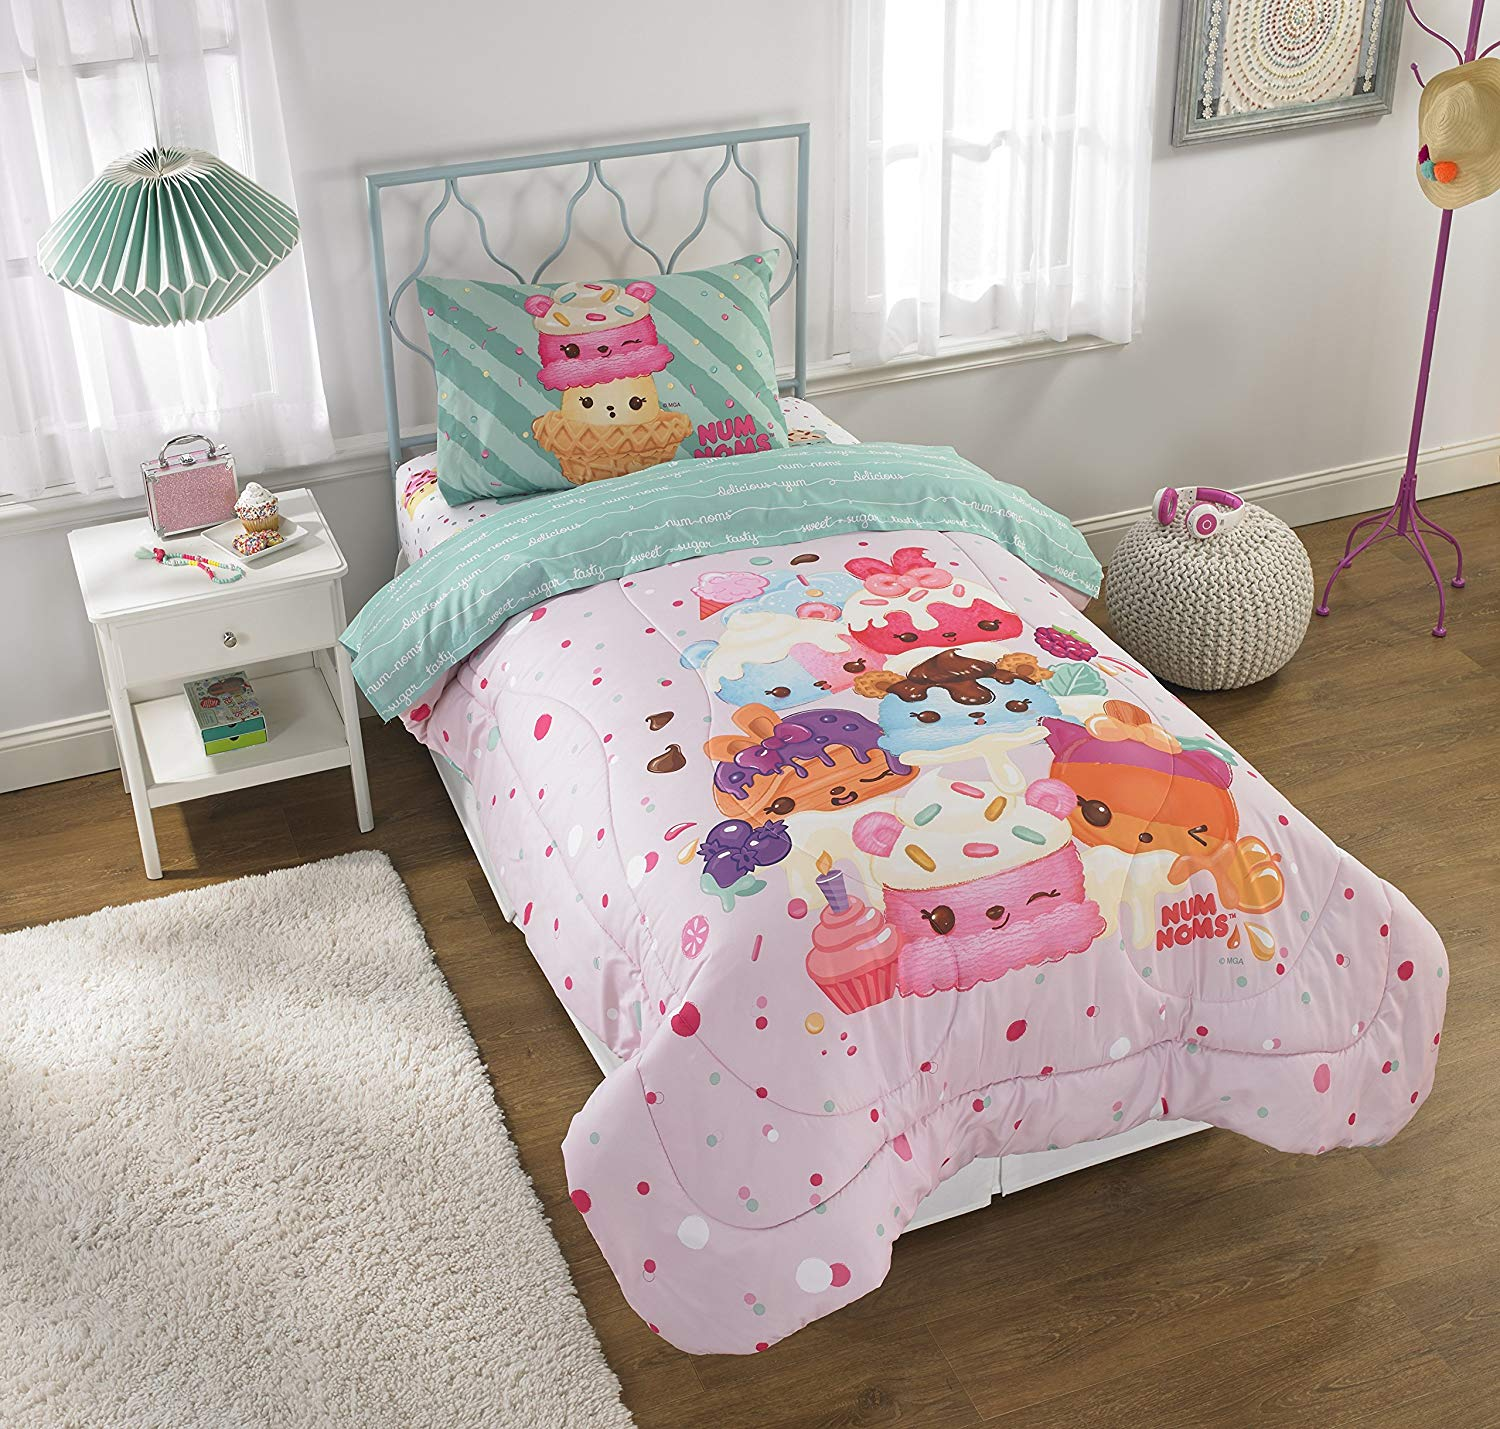 Keeco Num Noms Smells Happy Kids Bedding Scented Twin Comforter and Cordinating 3 pc Twin Sheet Set with Extra Coordinating 3pc Twin Sheet Set #521916775